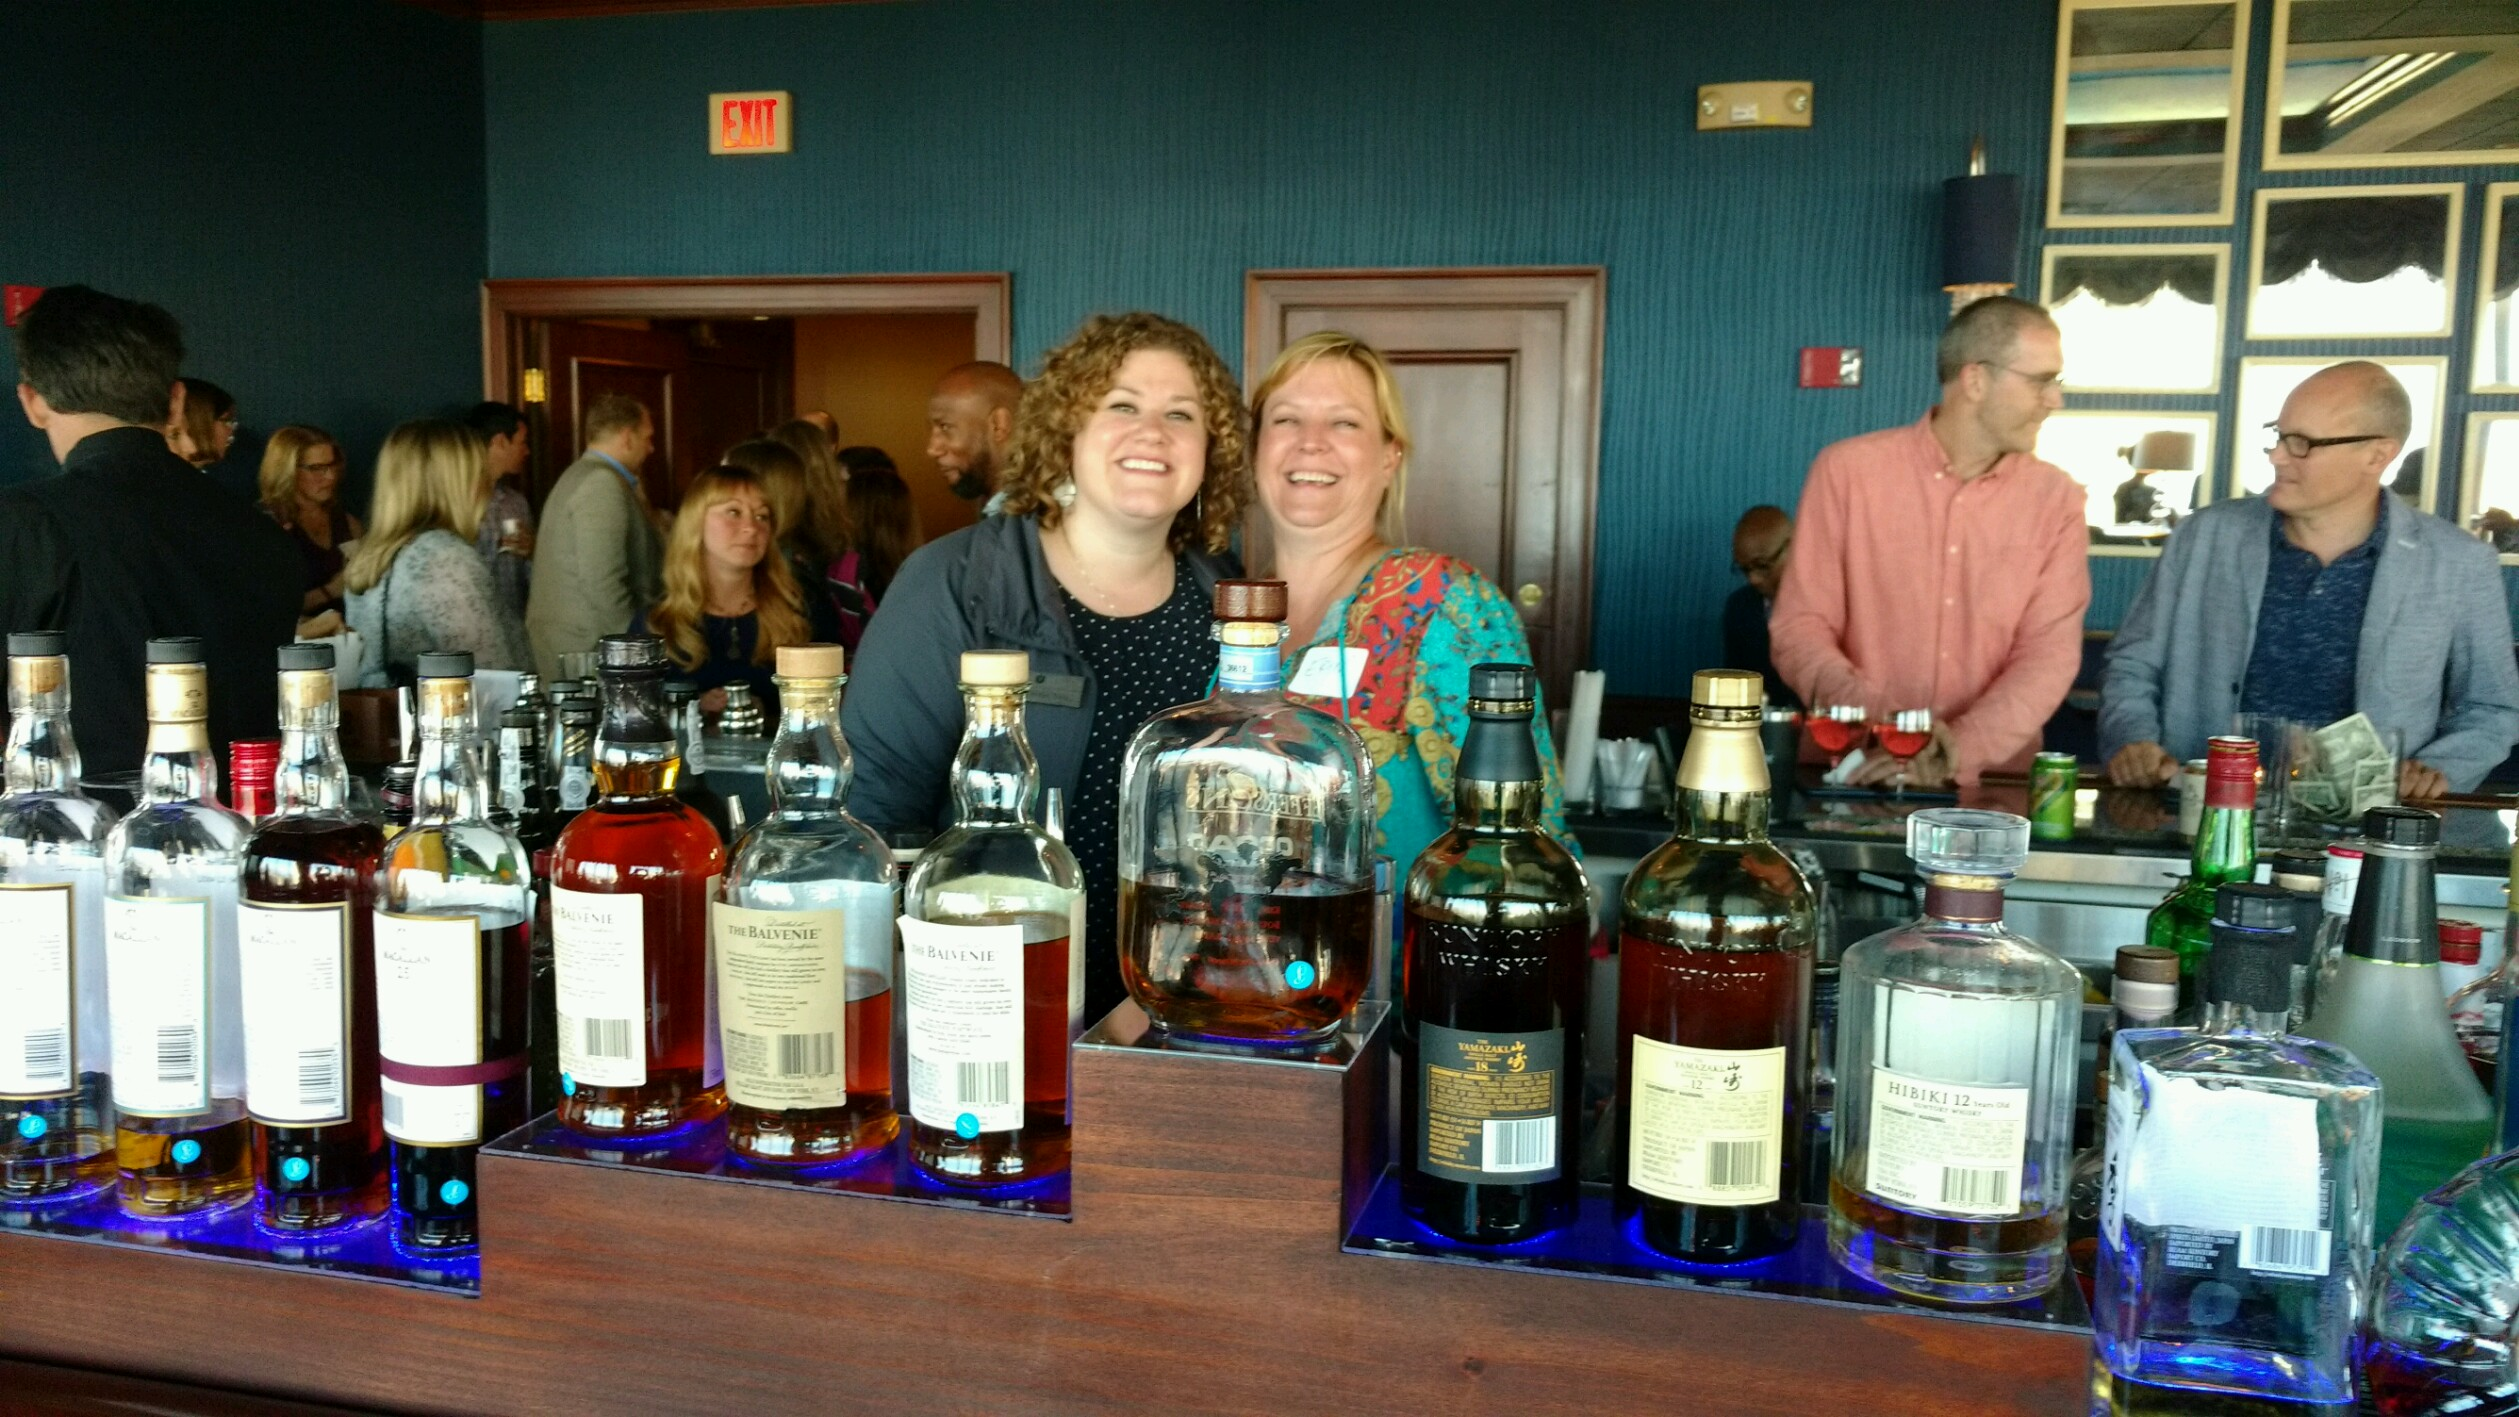 Carolyn Hahn and Erin Richardson posing while bartending. Row of liquor bottles across the bar in the foreground.